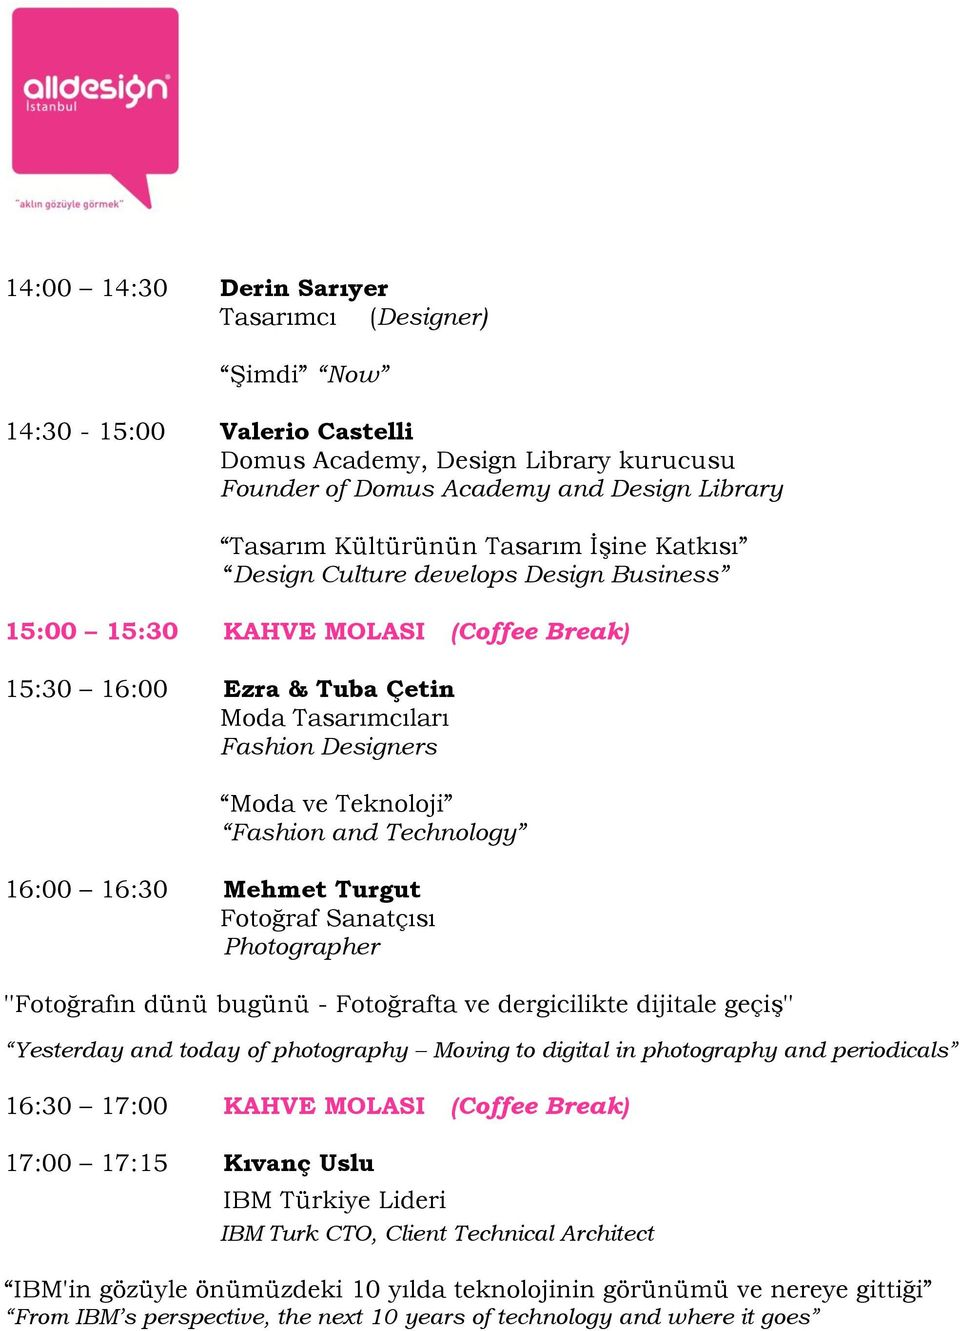 Technology 16:00 16:30 Mehmet Turgut Fotoğraf Sanatçısı Photographer ''Fotoğrafın dünü bugünü - Fotoğrafta ve dergicilikte dijitale geçiş'' Yesterday and today of photography Moving to digital in